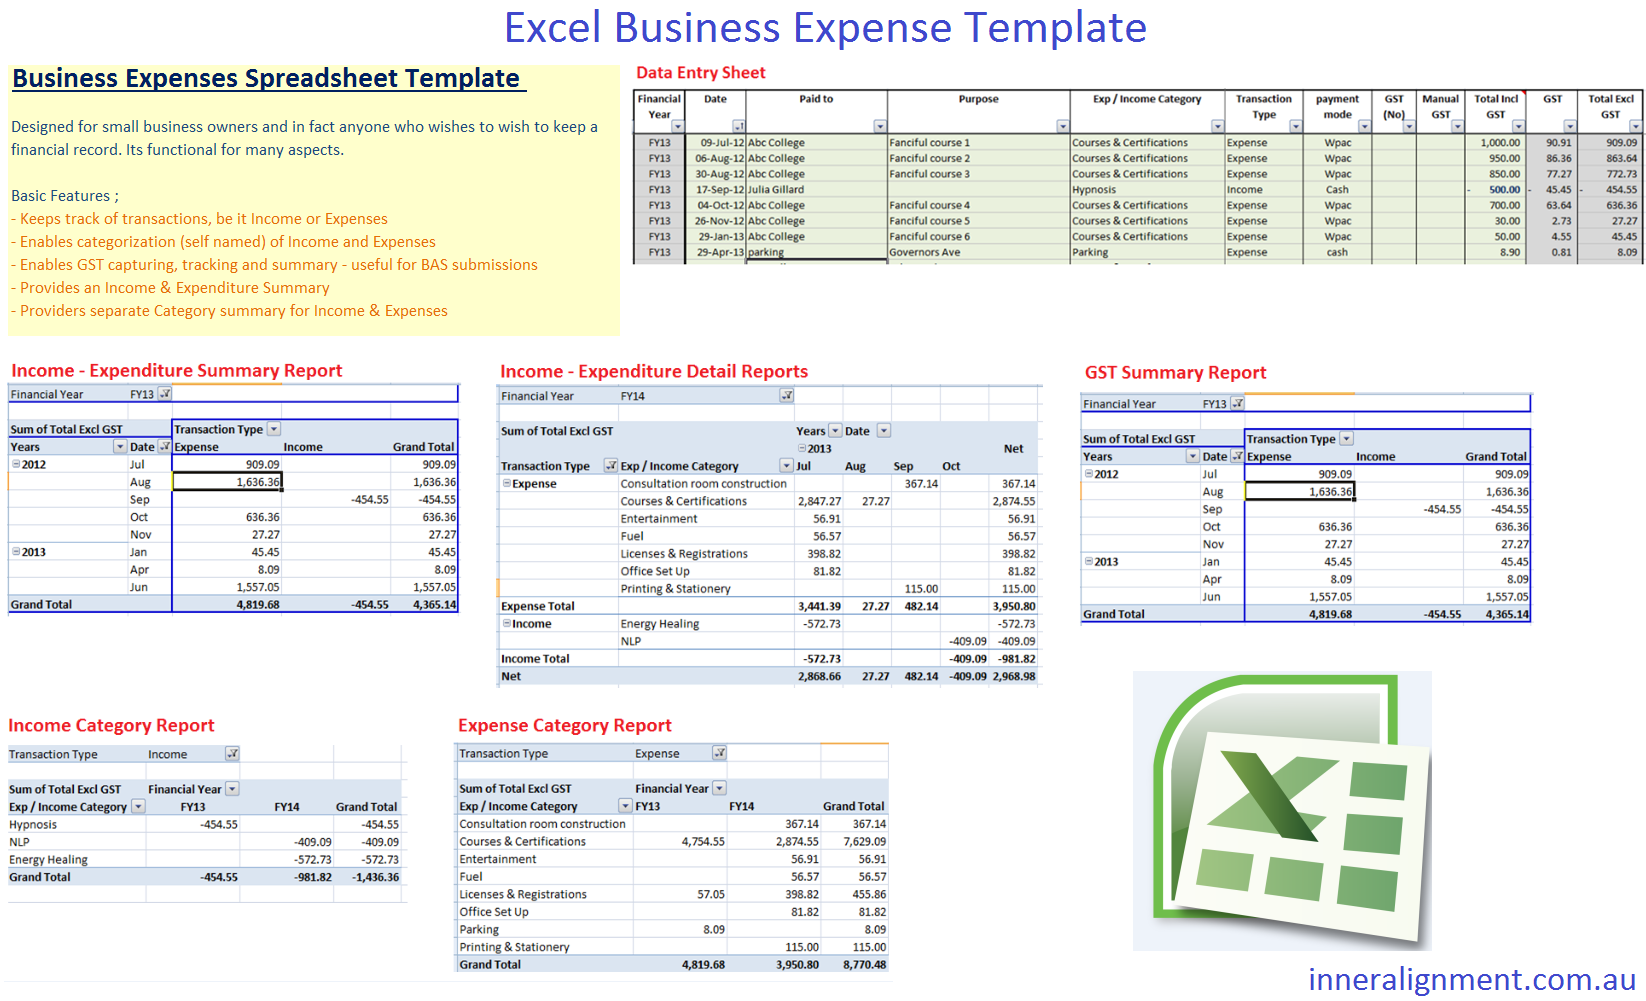 excel free business expense template inner alignment perth